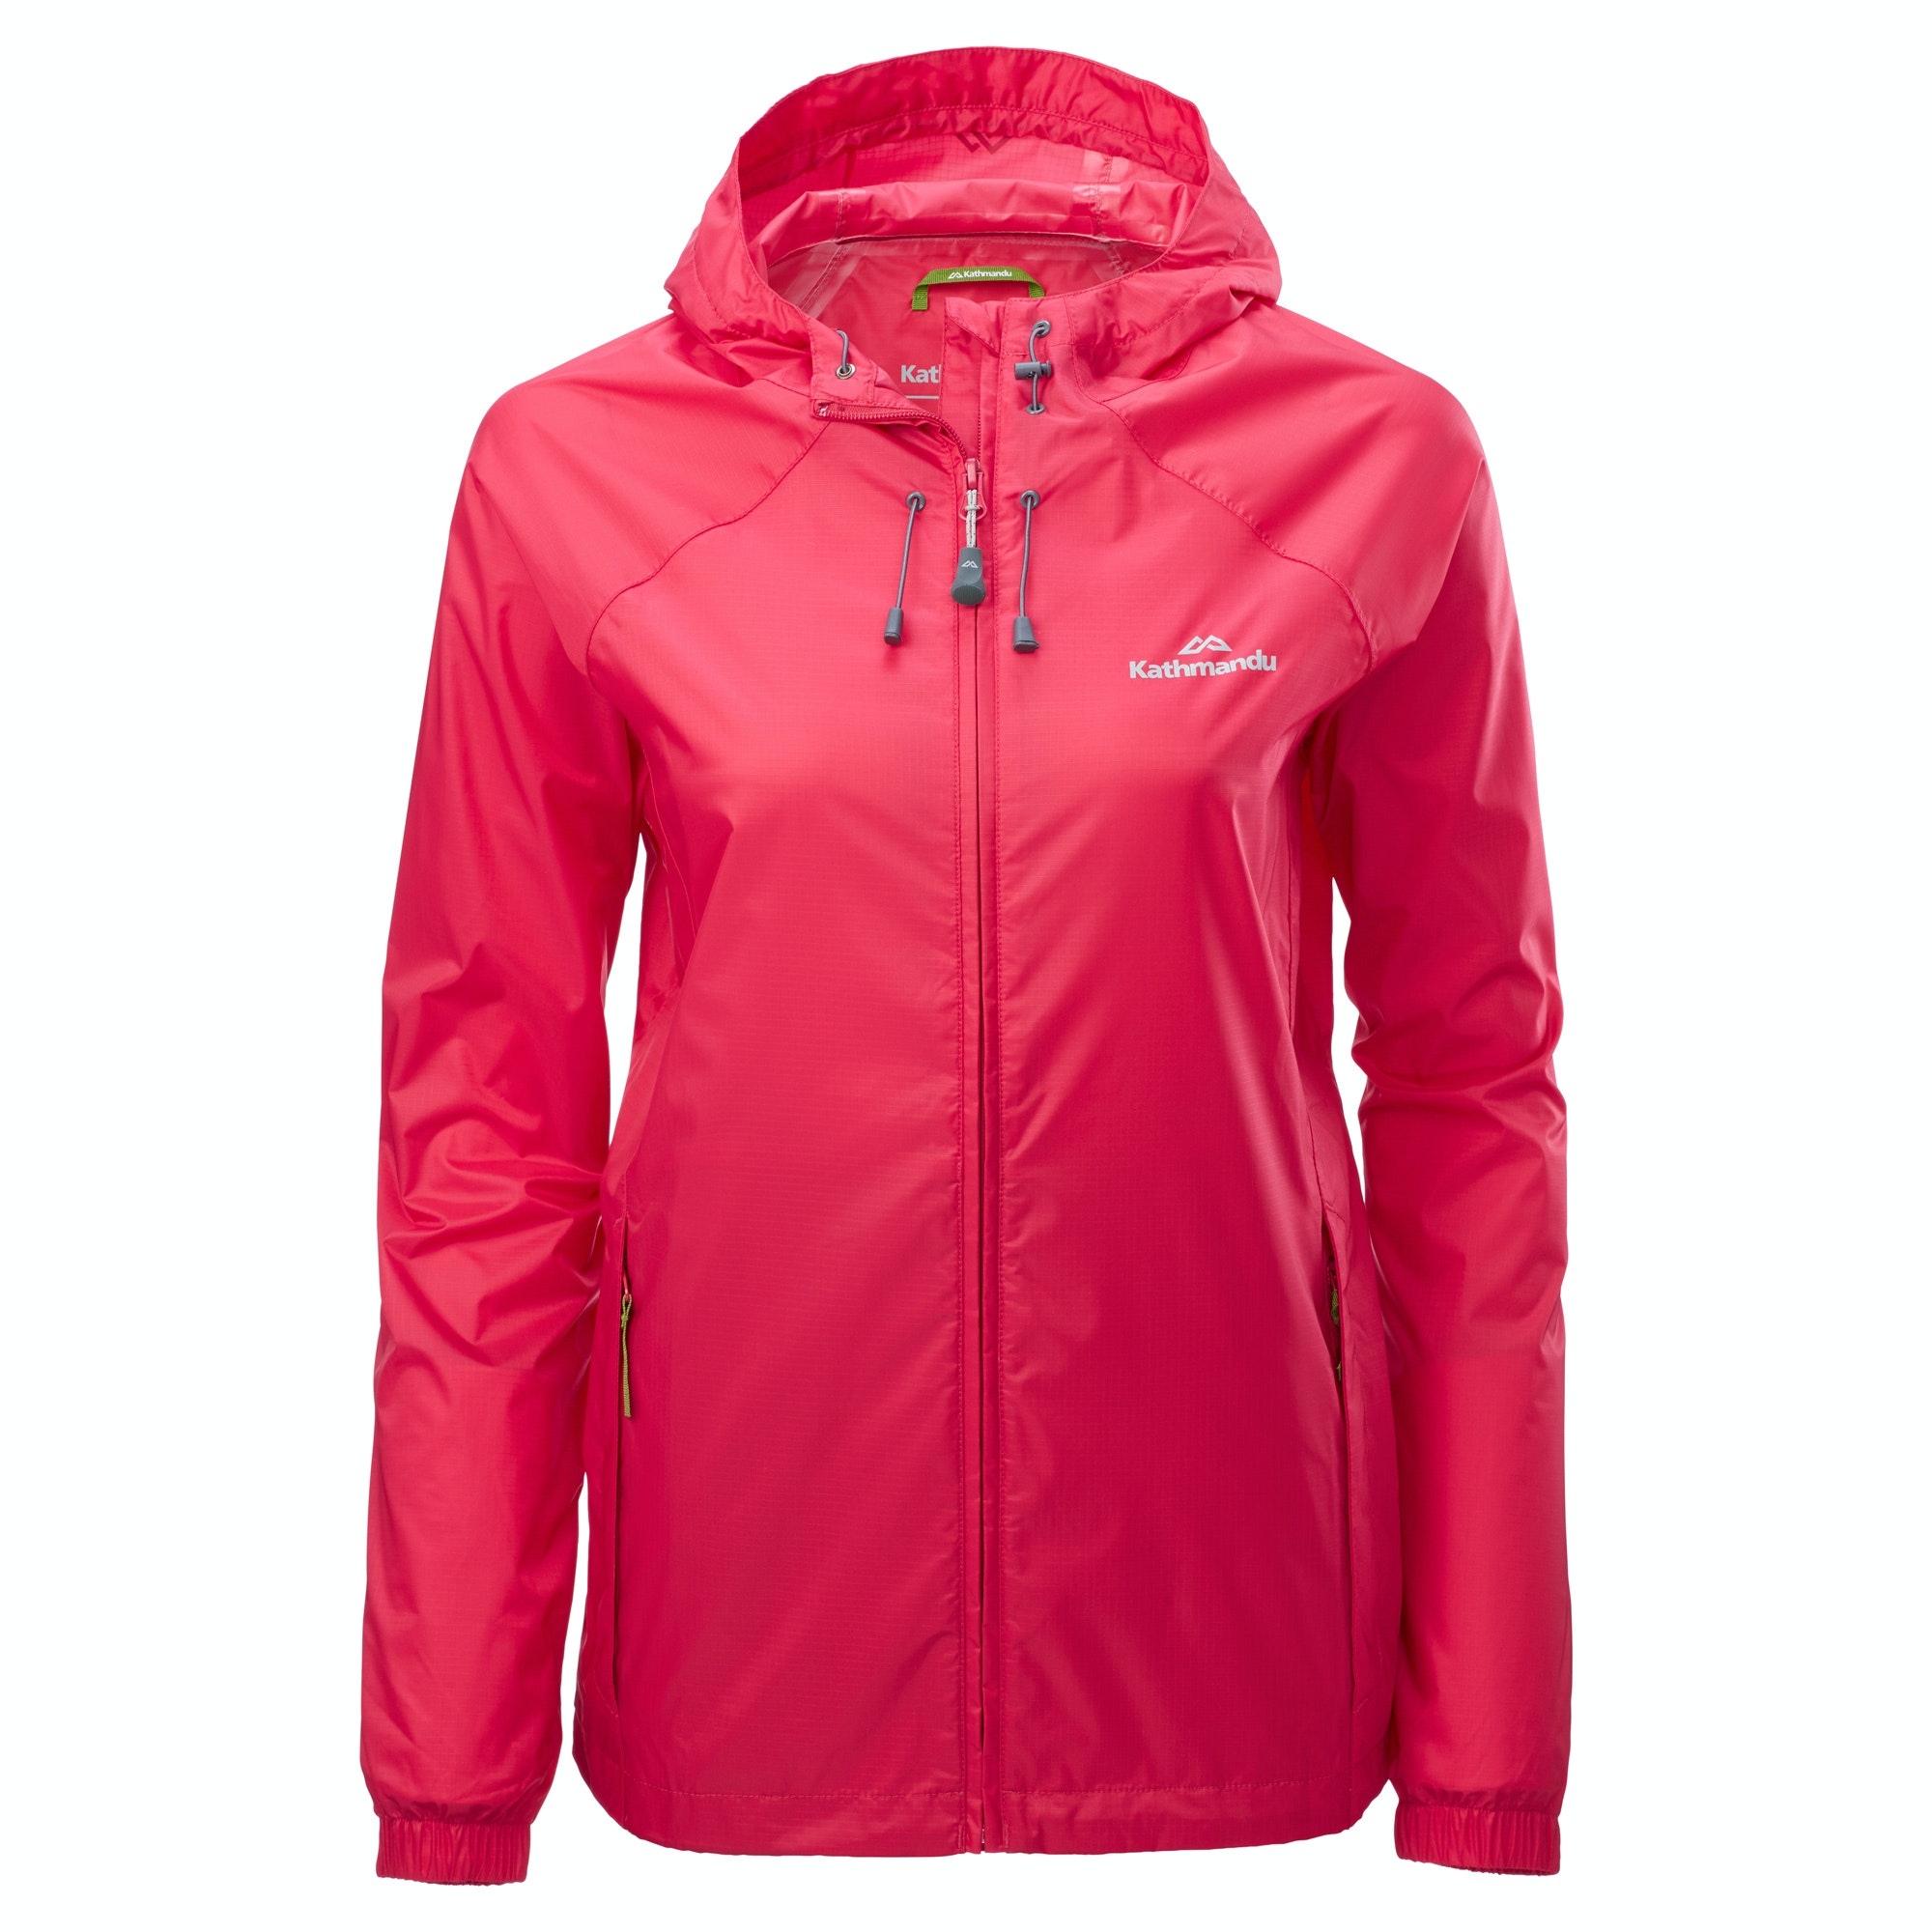 Lightweight men's rain jacket is perfect for where light travel LOMON Women Waterproof Lightweight Rain Jacket Active Outdoor Hooded Raincoat. by LOMON. $ - $ $ 9 $ 32 90 Prime. FREE Shipping on eligible orders. Some sizes/colors are Prime eligible. out of 5 stars